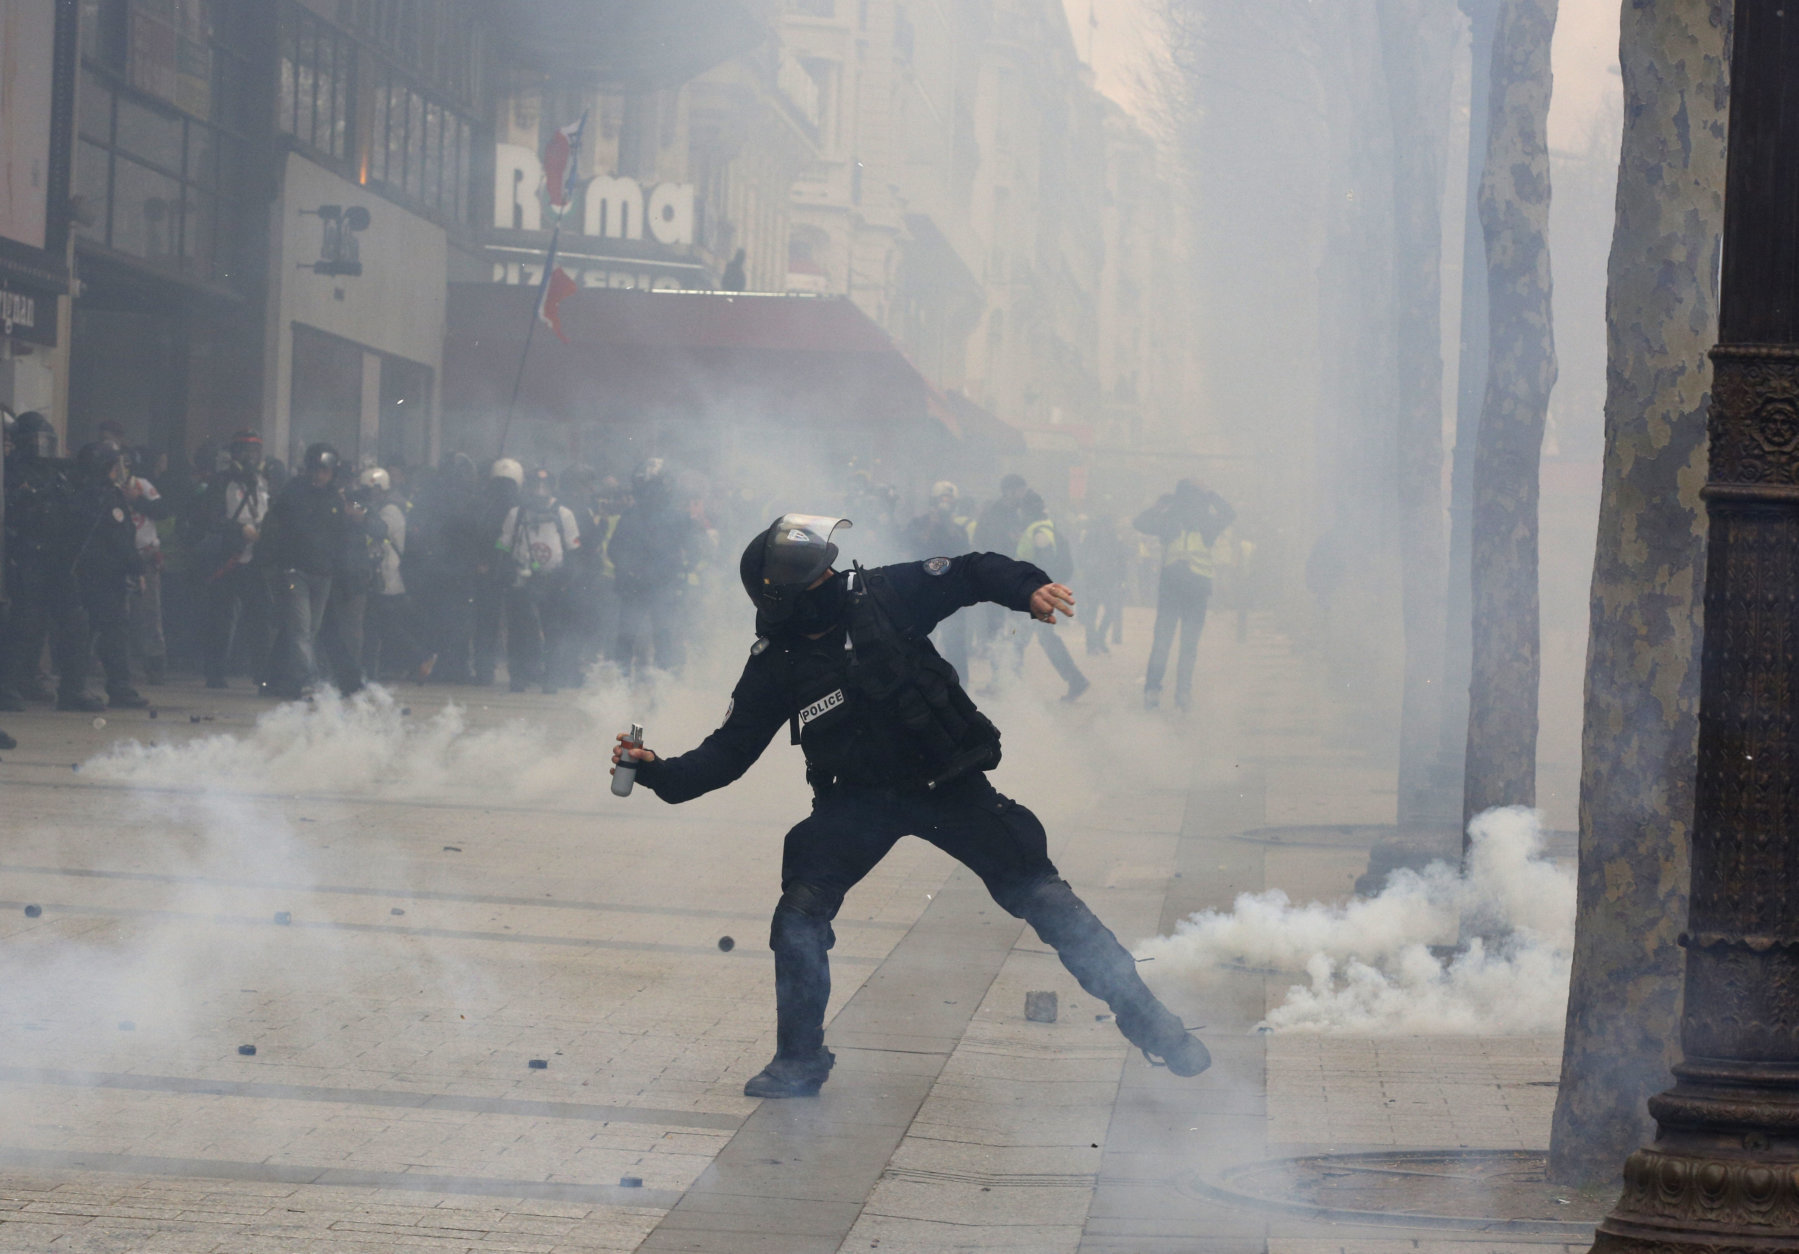 A riot police officer throws a tera gas canister onto protesters during a yellow vests demonstration on the Champs Elysees avenue Saturday, March 16, 2019 in Paris. French yellow vest protesters clashed Saturday with riot police near the Arc de Triomphe as they kicked off their 18th straight weekend of demonstrations against President Emmanuel Macron. (AP Photo/Christophe Ena)